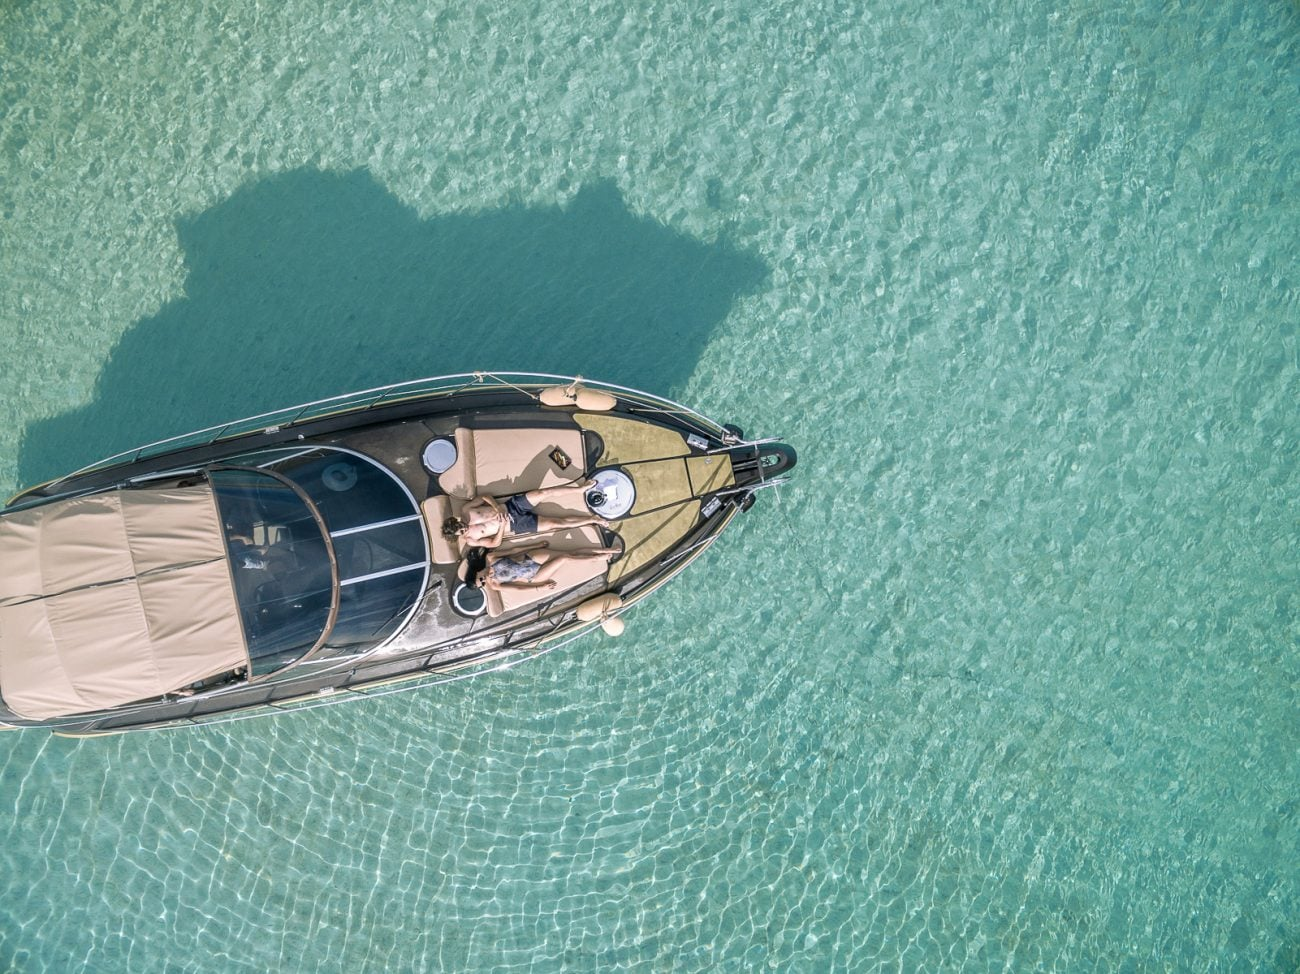 Overhead view of a boat sailing on the Aegean sea in Ornos, Mykonos.